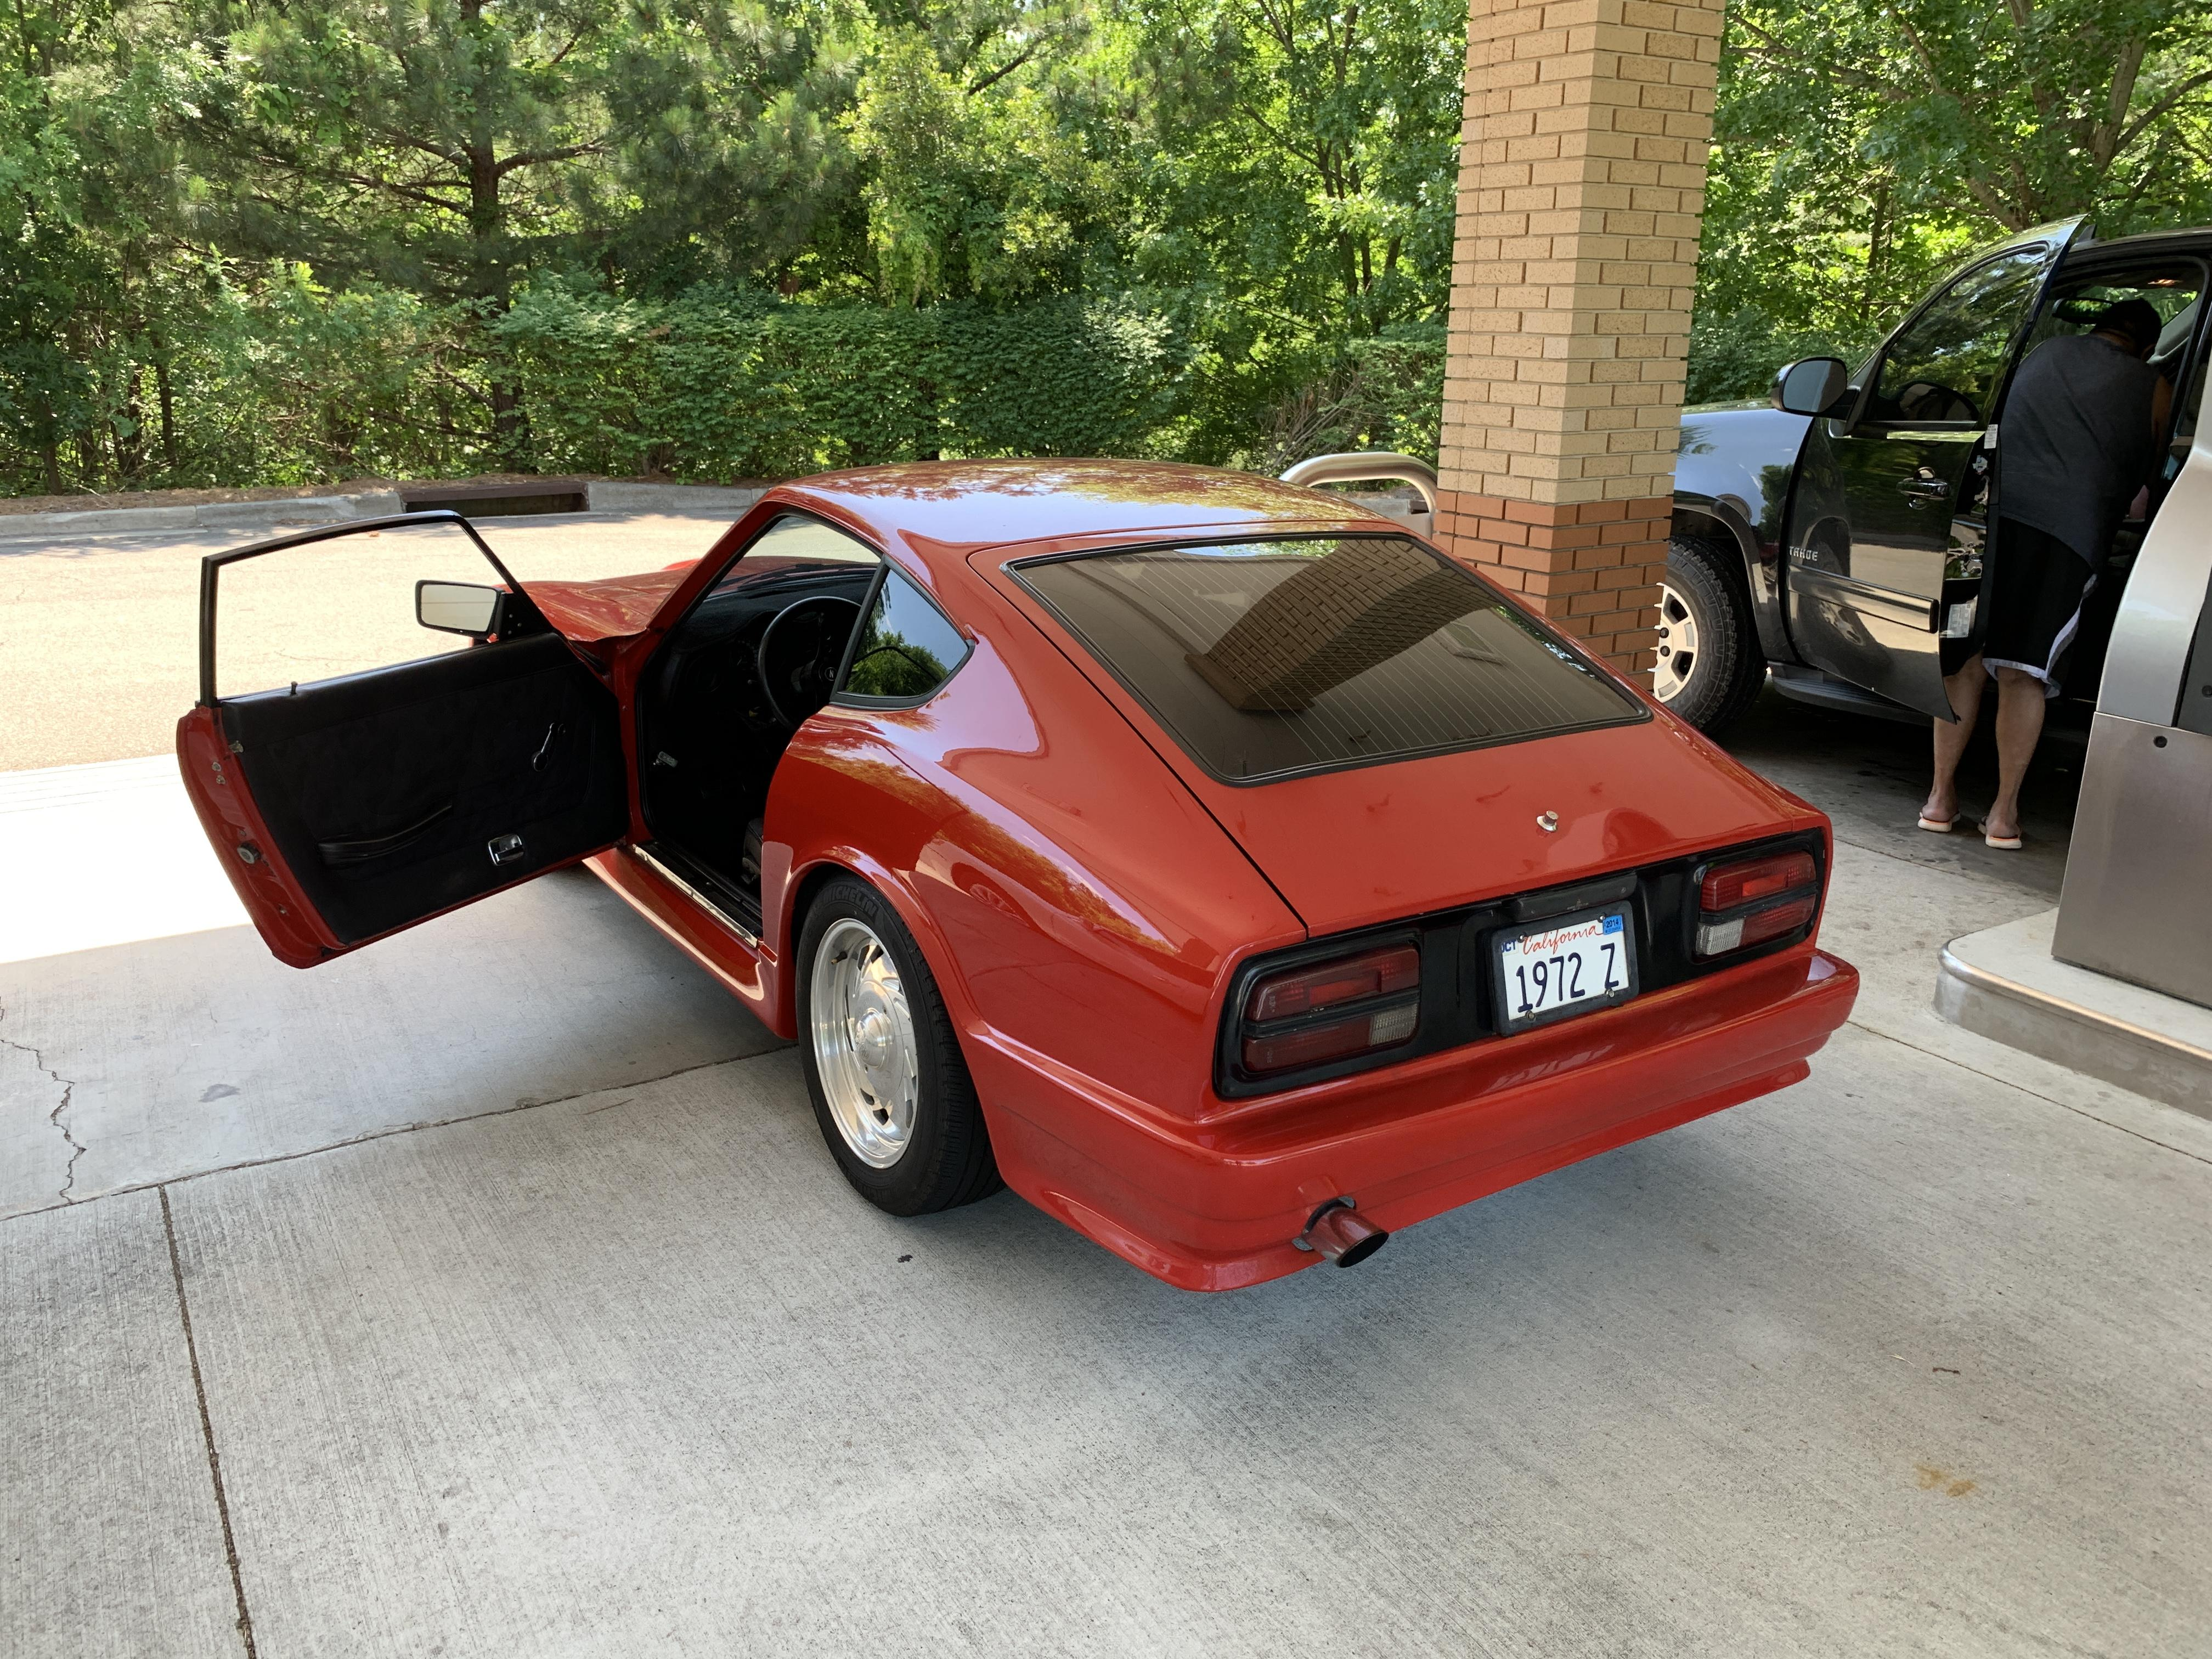 1972 240Z for sale